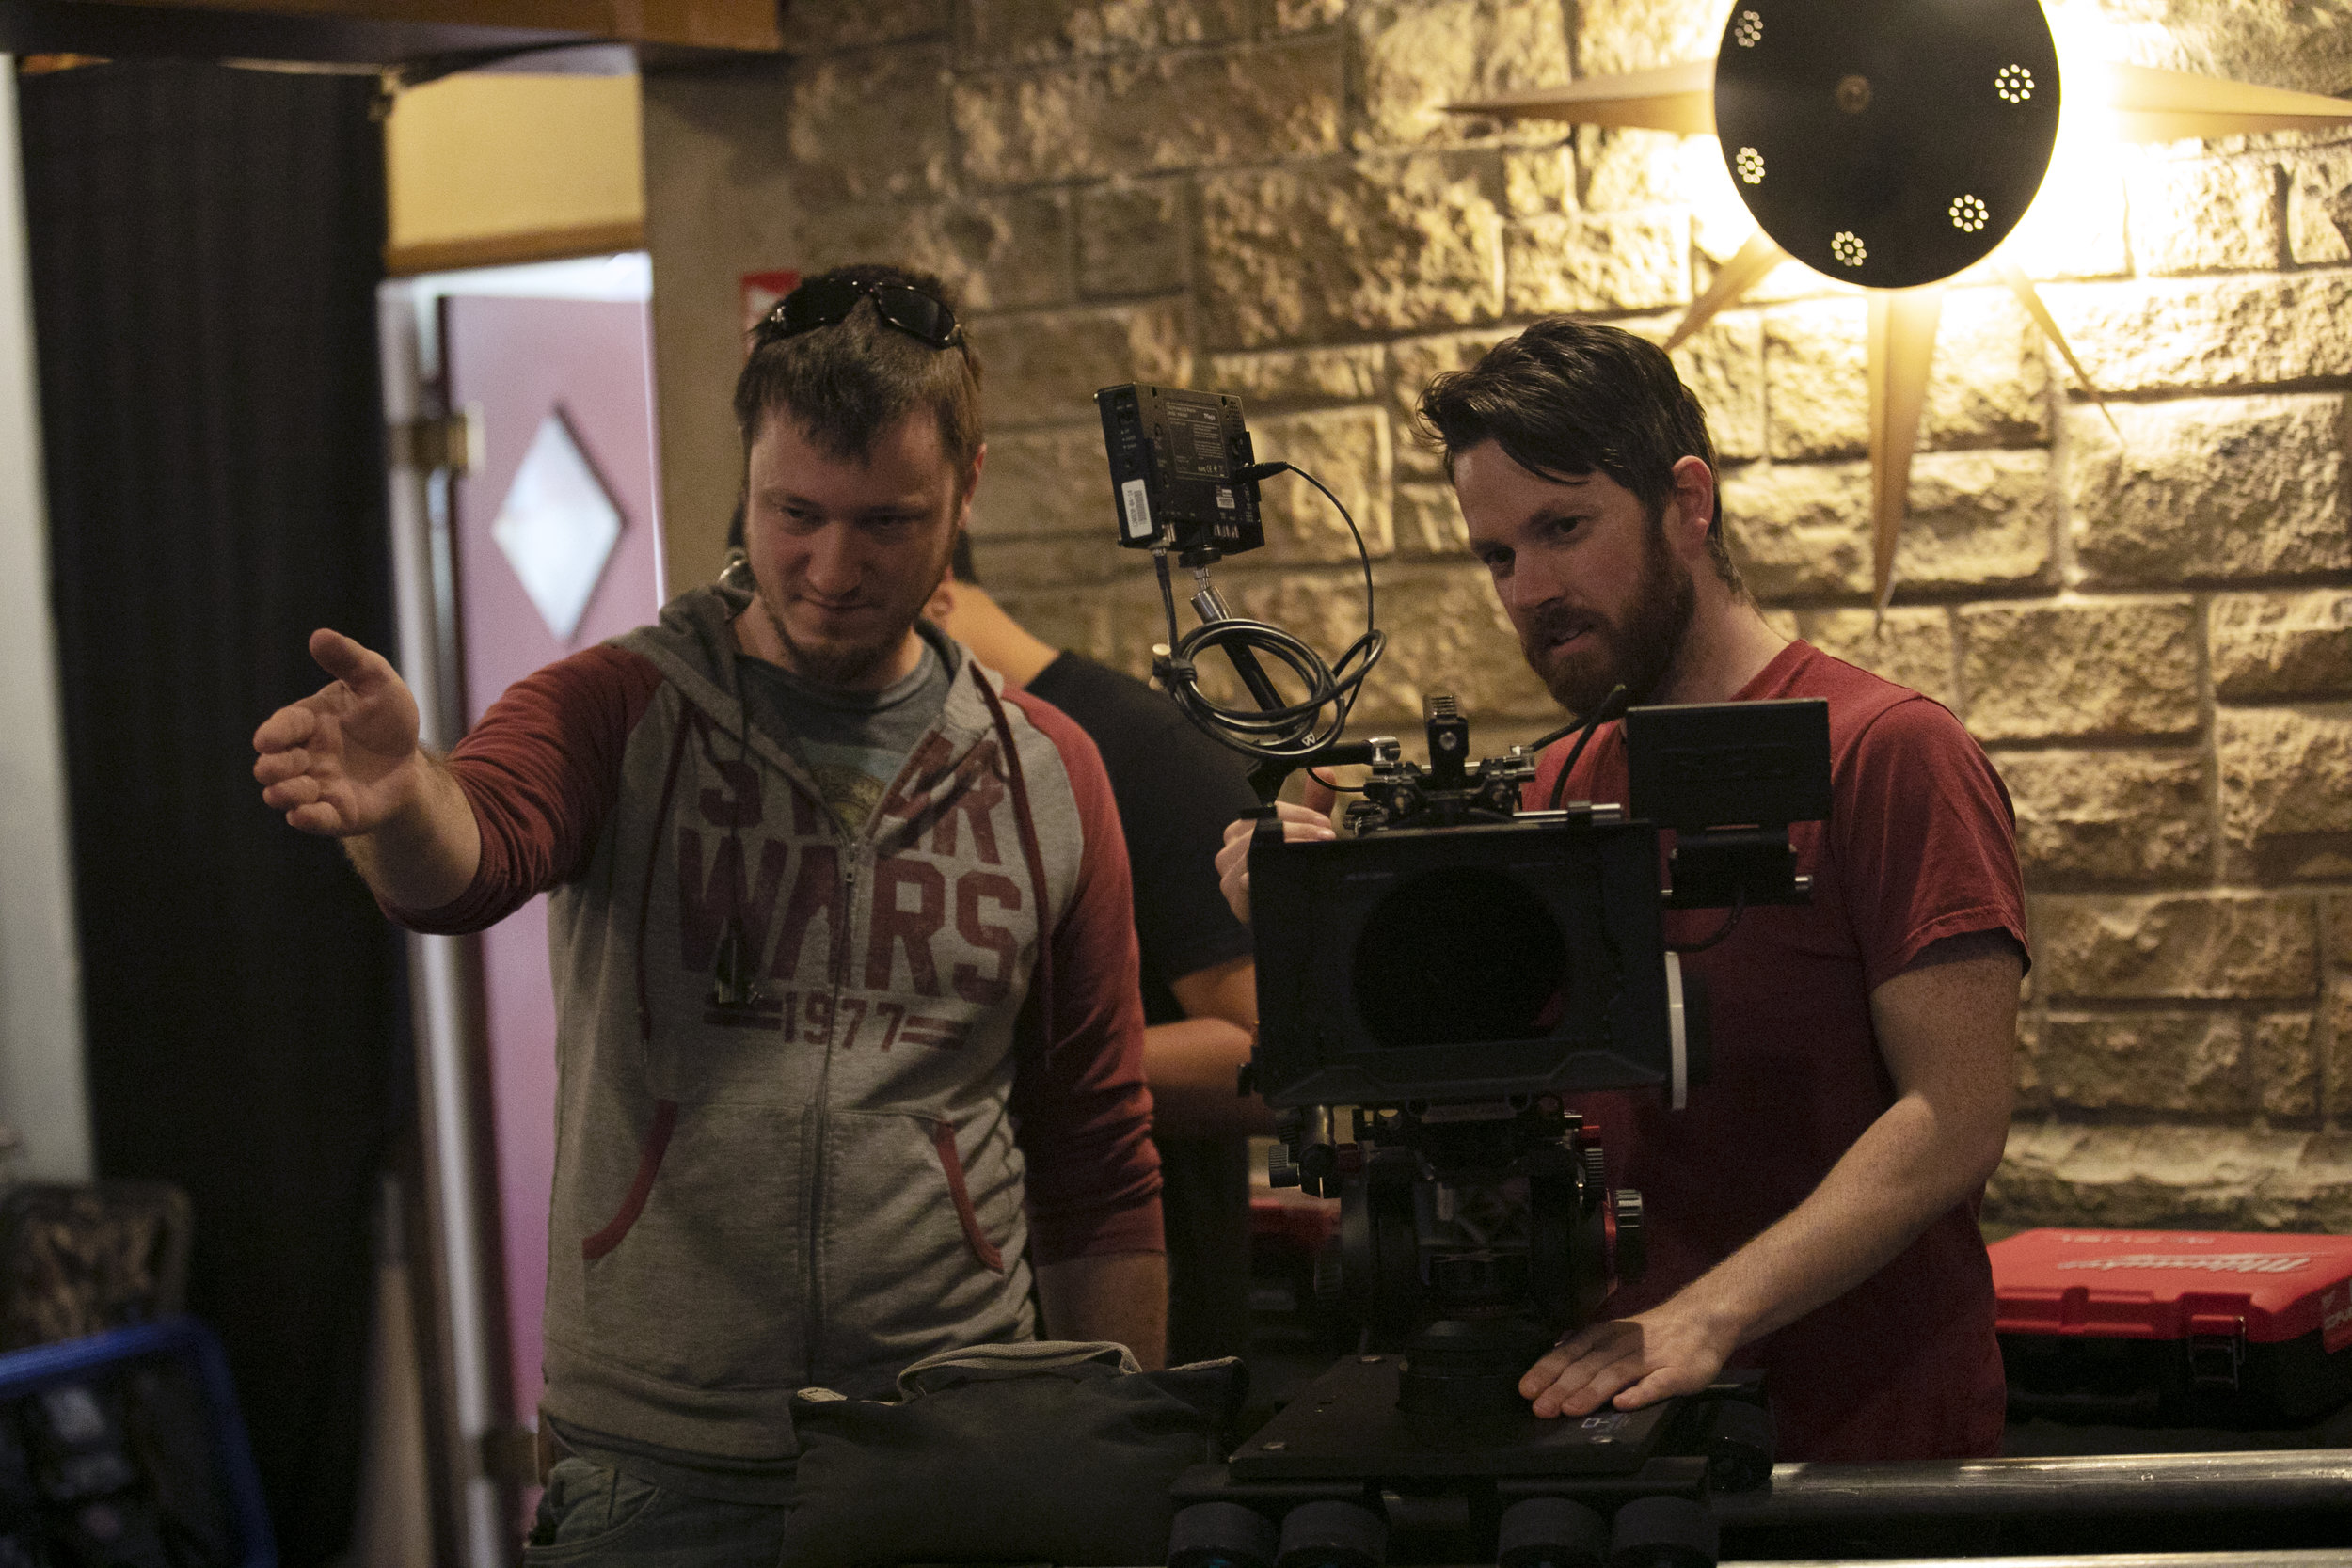 Philip Collins (key grip) and Rick Craft (director of photography)